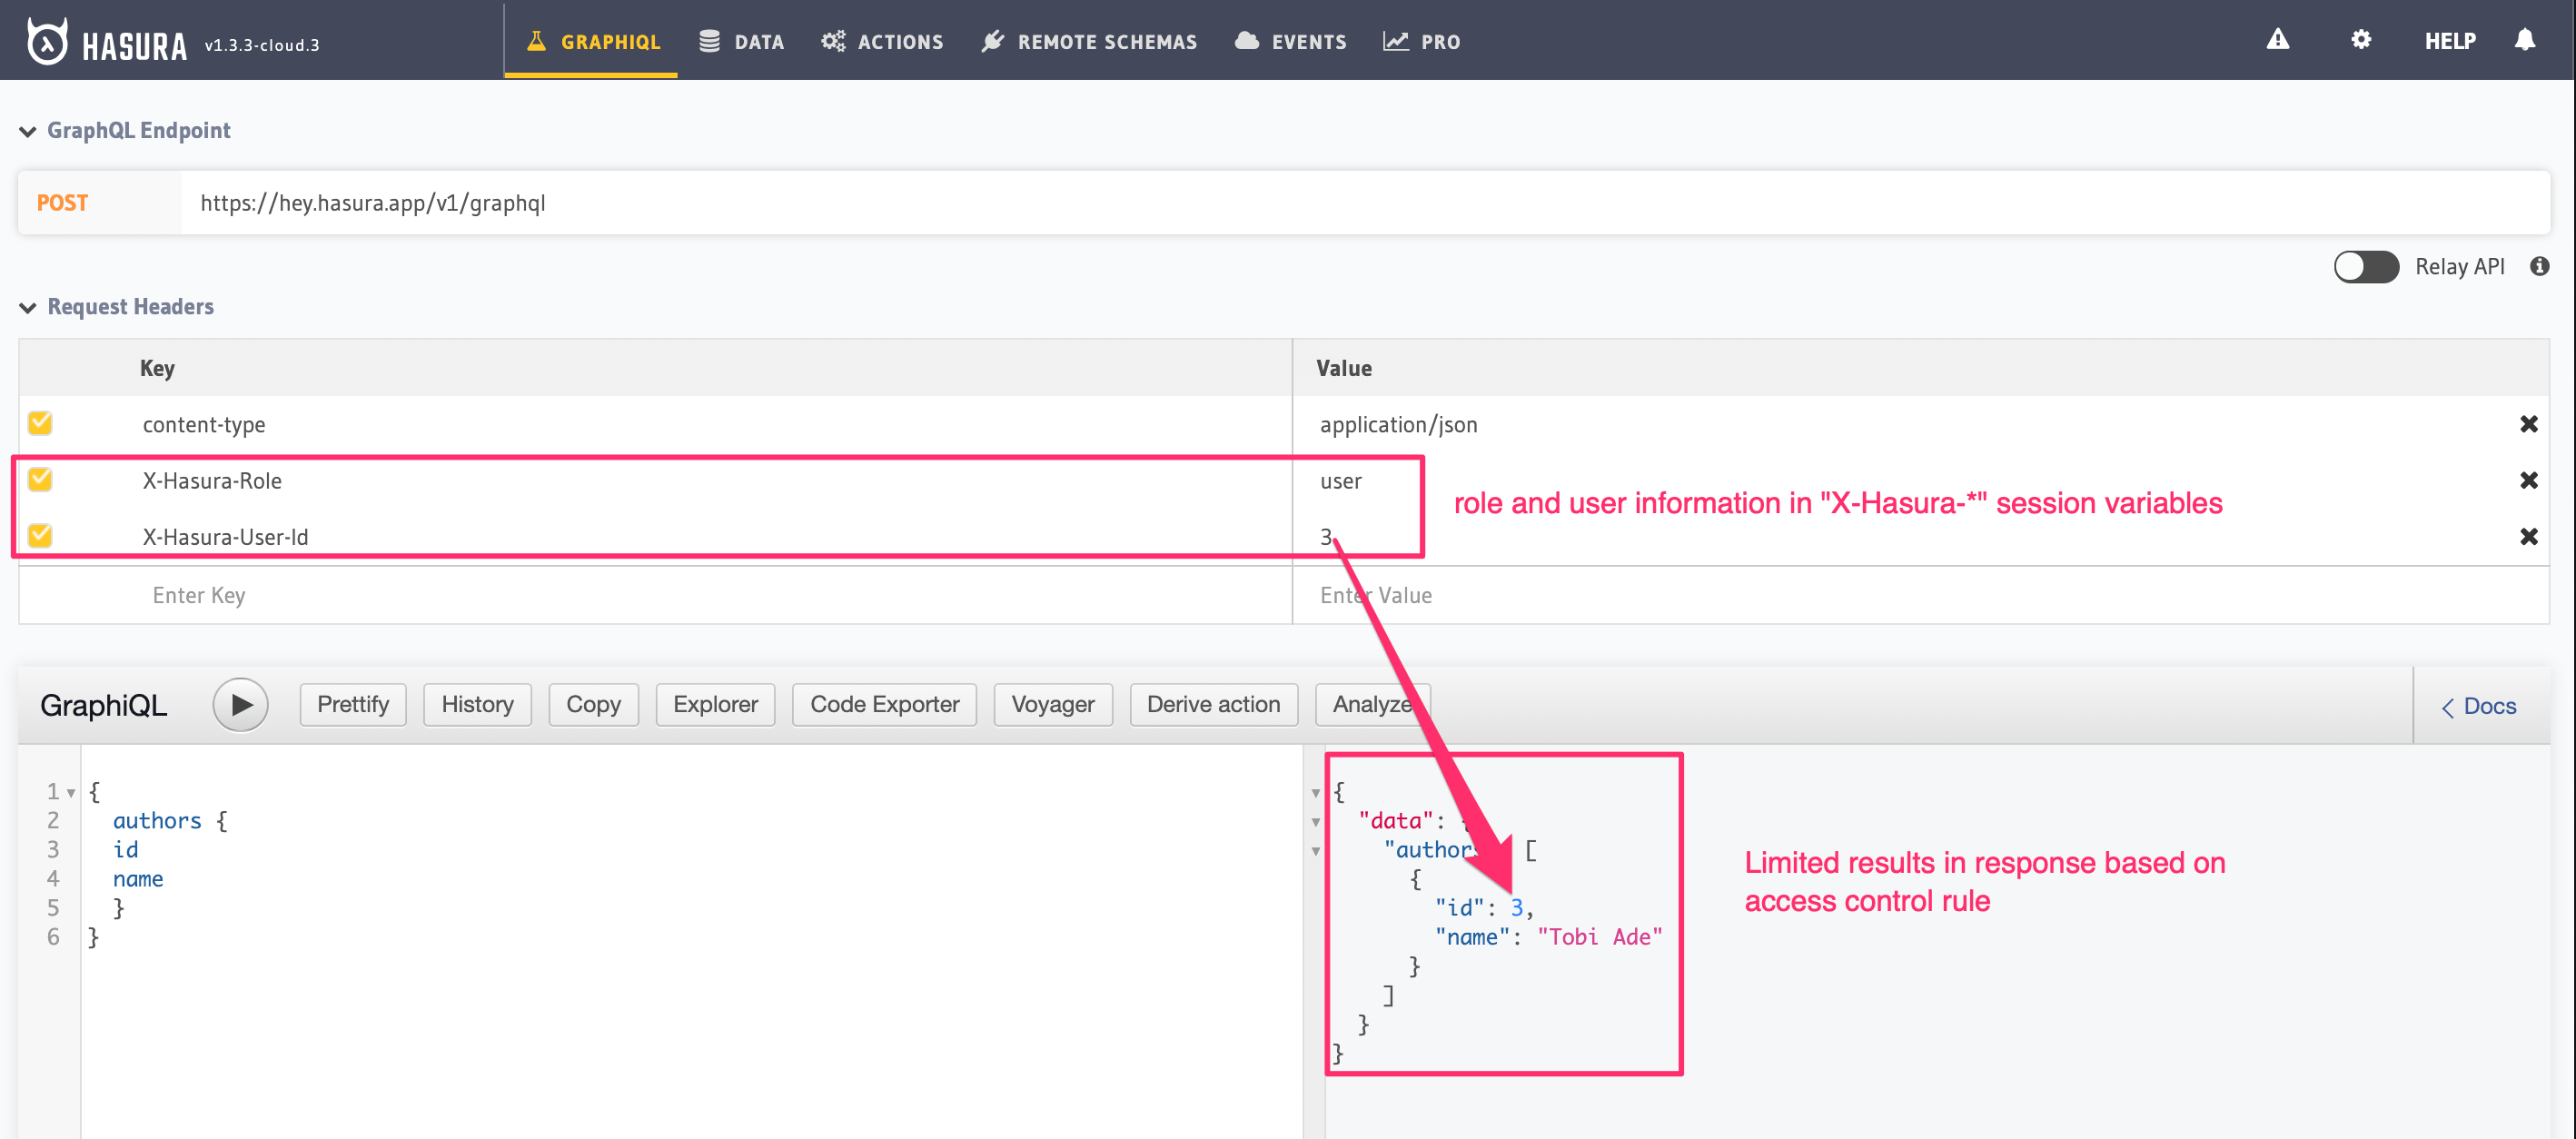 https://hasura.io/docs/1.0/_images/permission-basics-query-with-access-control1.png